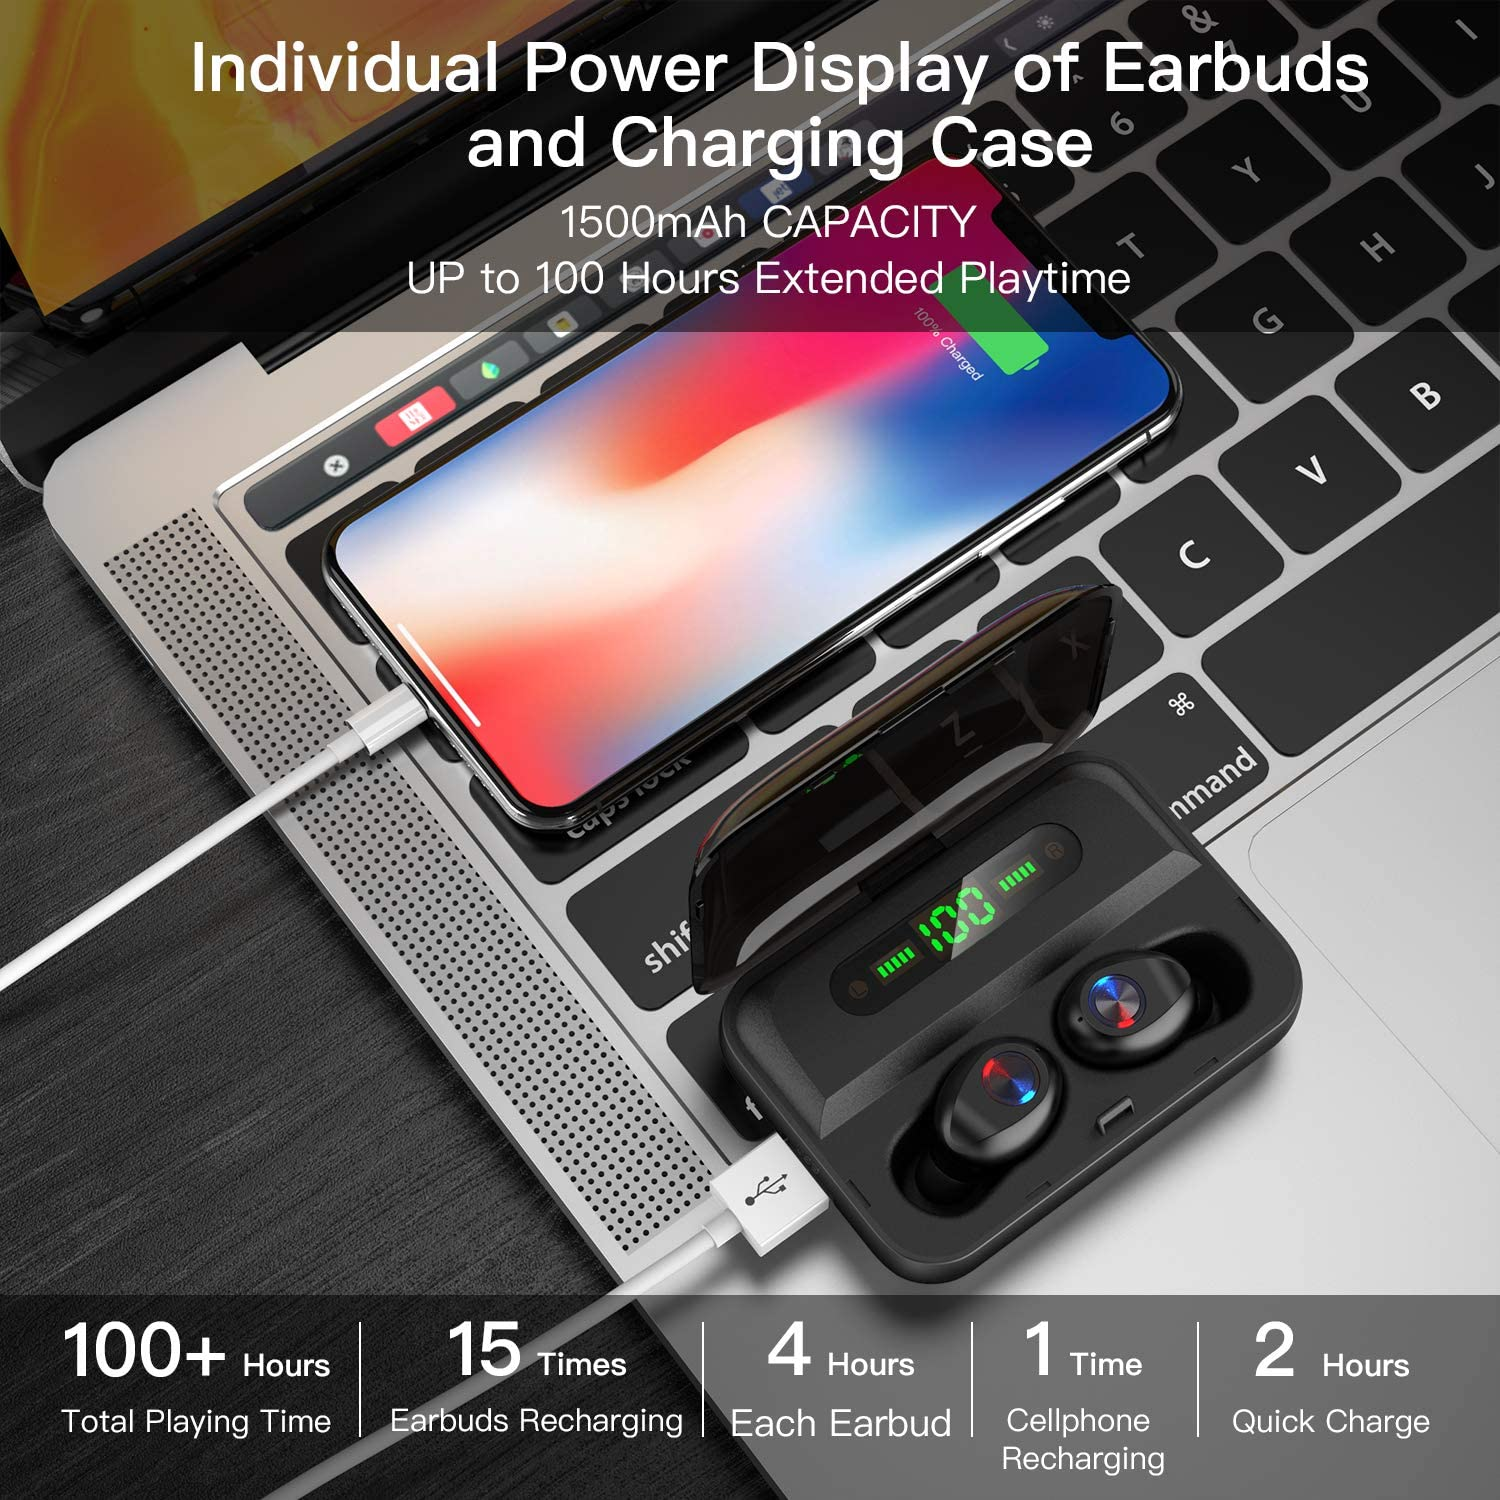 Wireless Earbuds Bluetooth 5.0 Earphones with 1500mAh Charging Case LED Battery Display in-Ear Wireless Earphones 100-Hour Playtime Waterproof Noise Canceling Mic Hi-Fi Stereo Sound for Gym